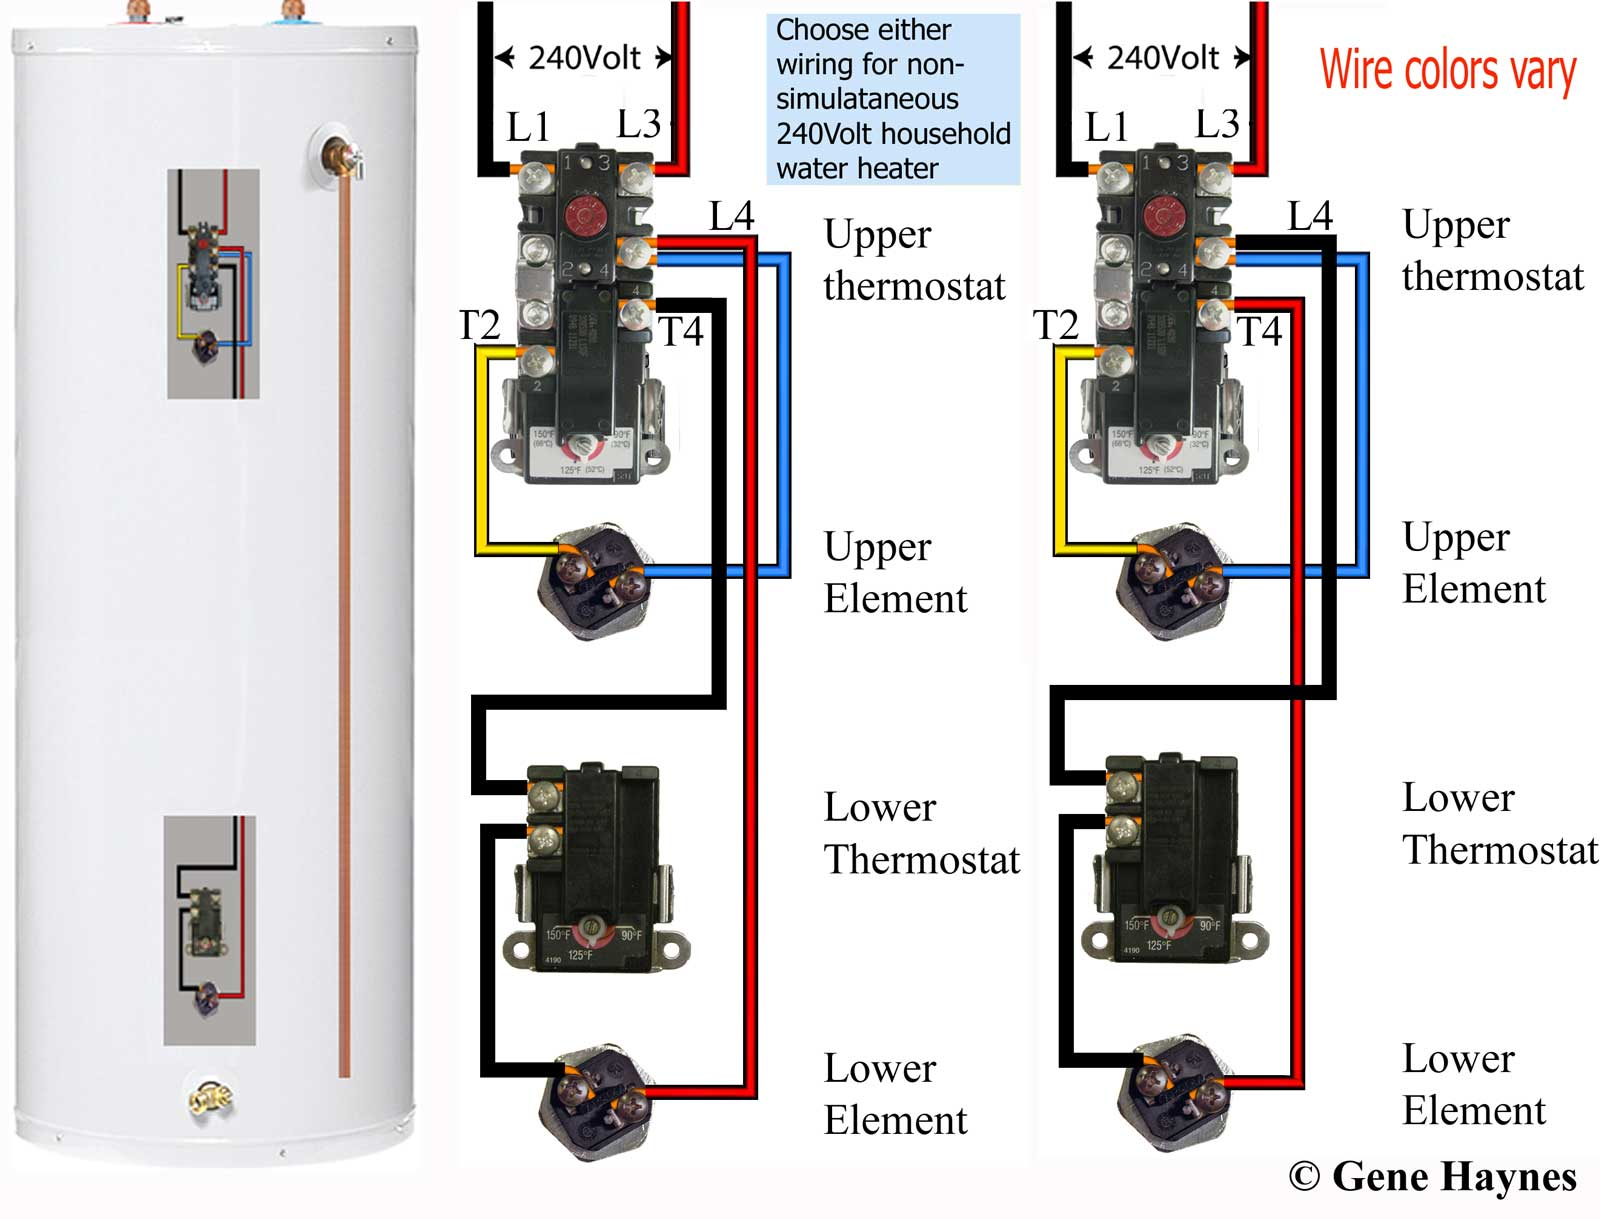 How To Wire Water Heater Thermostats Furnace Wiring From Breaker Box See Larger Residential Dual Element Both Elements Are Never On At Same Time Unless Tank Is Wired For Other Purpose Owners Manual